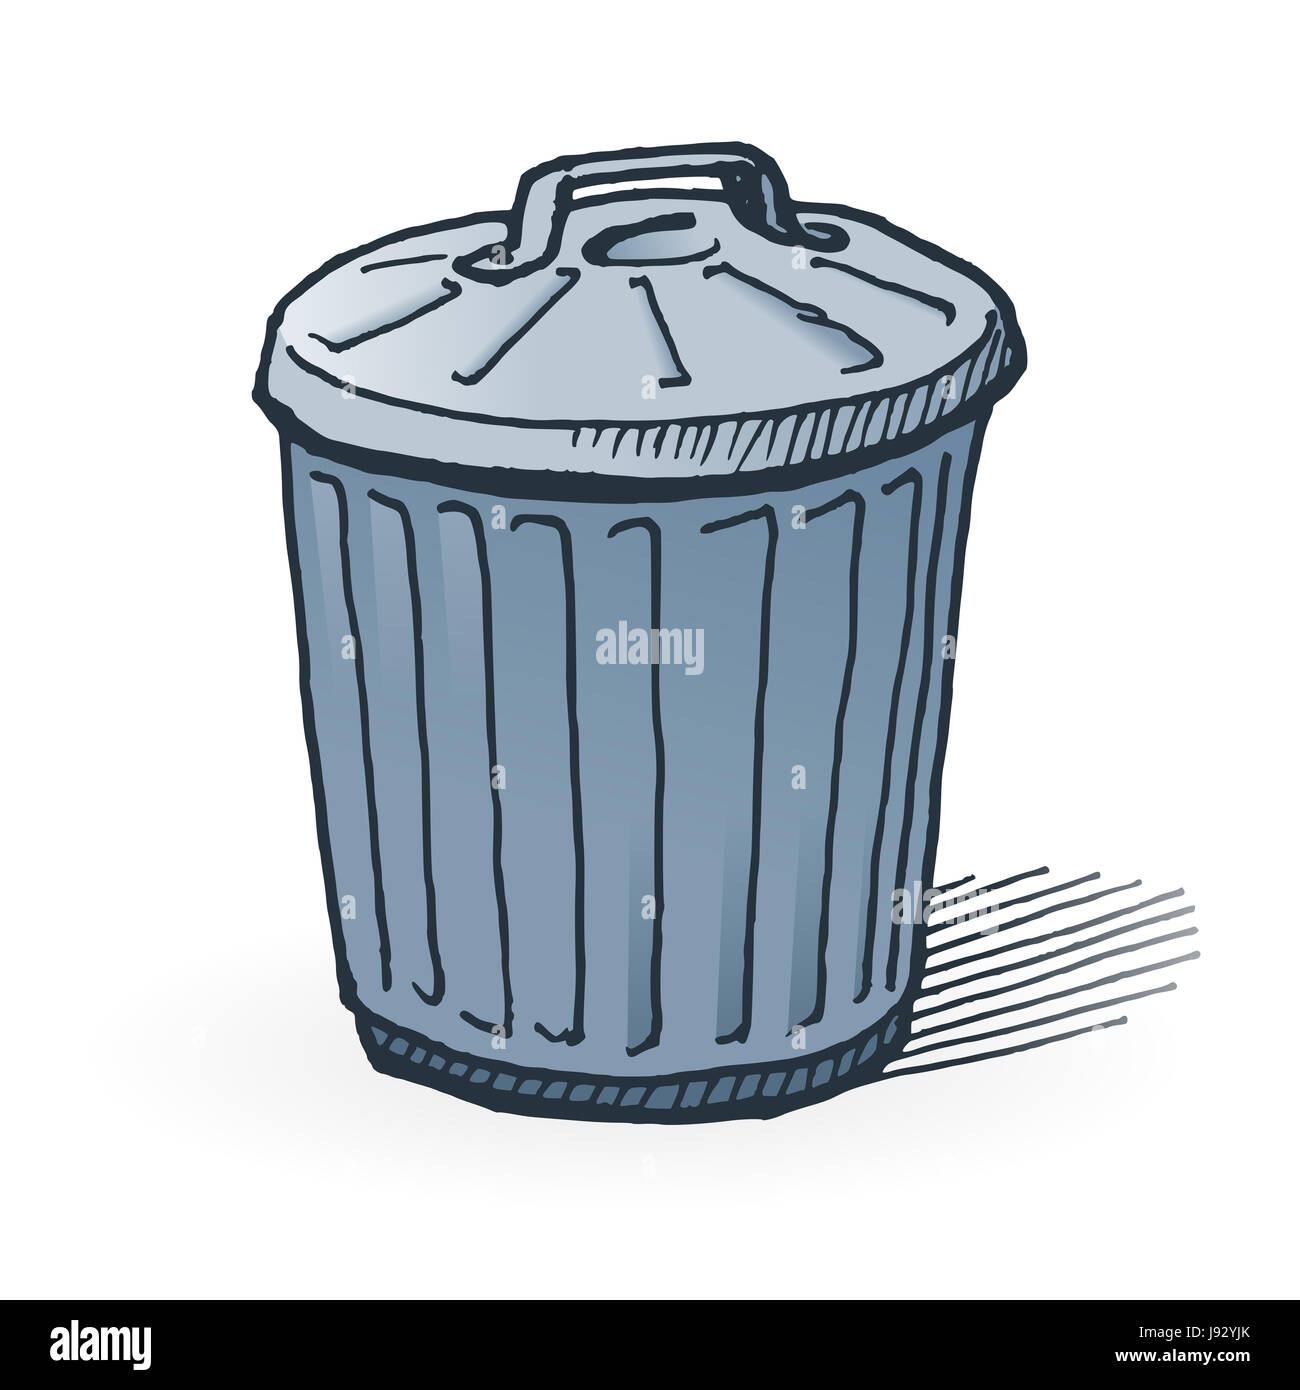 Cartoon Drawing Trash Can High Resolution Stock Photography And